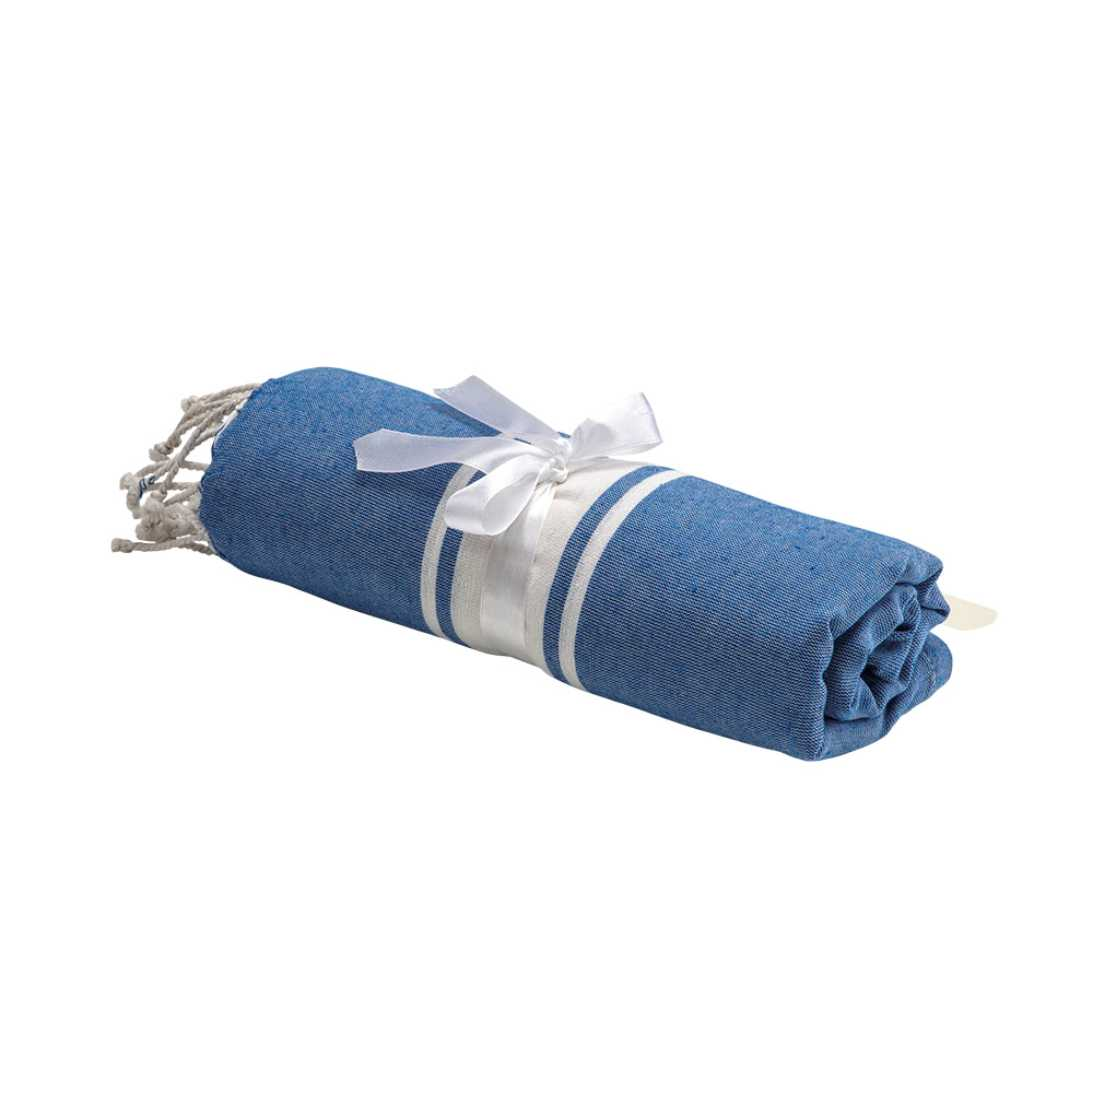 Fouta beach towel/sarong -Royal Blue sip-1942310